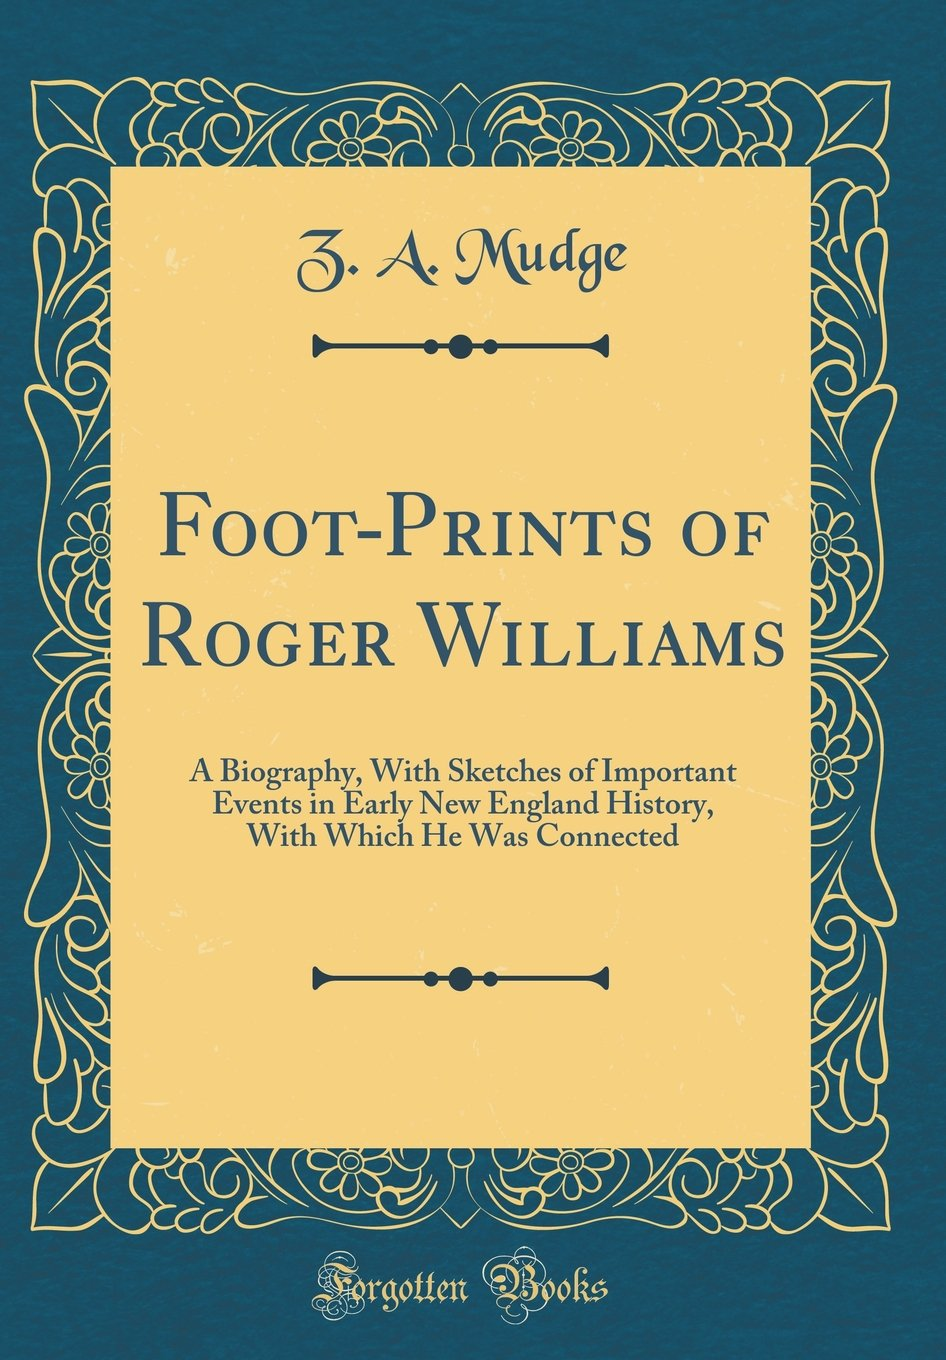 Download Foot-Prints of Roger Williams: A Biography, With Sketches of Important Events in Early New England History, With Which He Was Connected (Classic Reprint) PDF